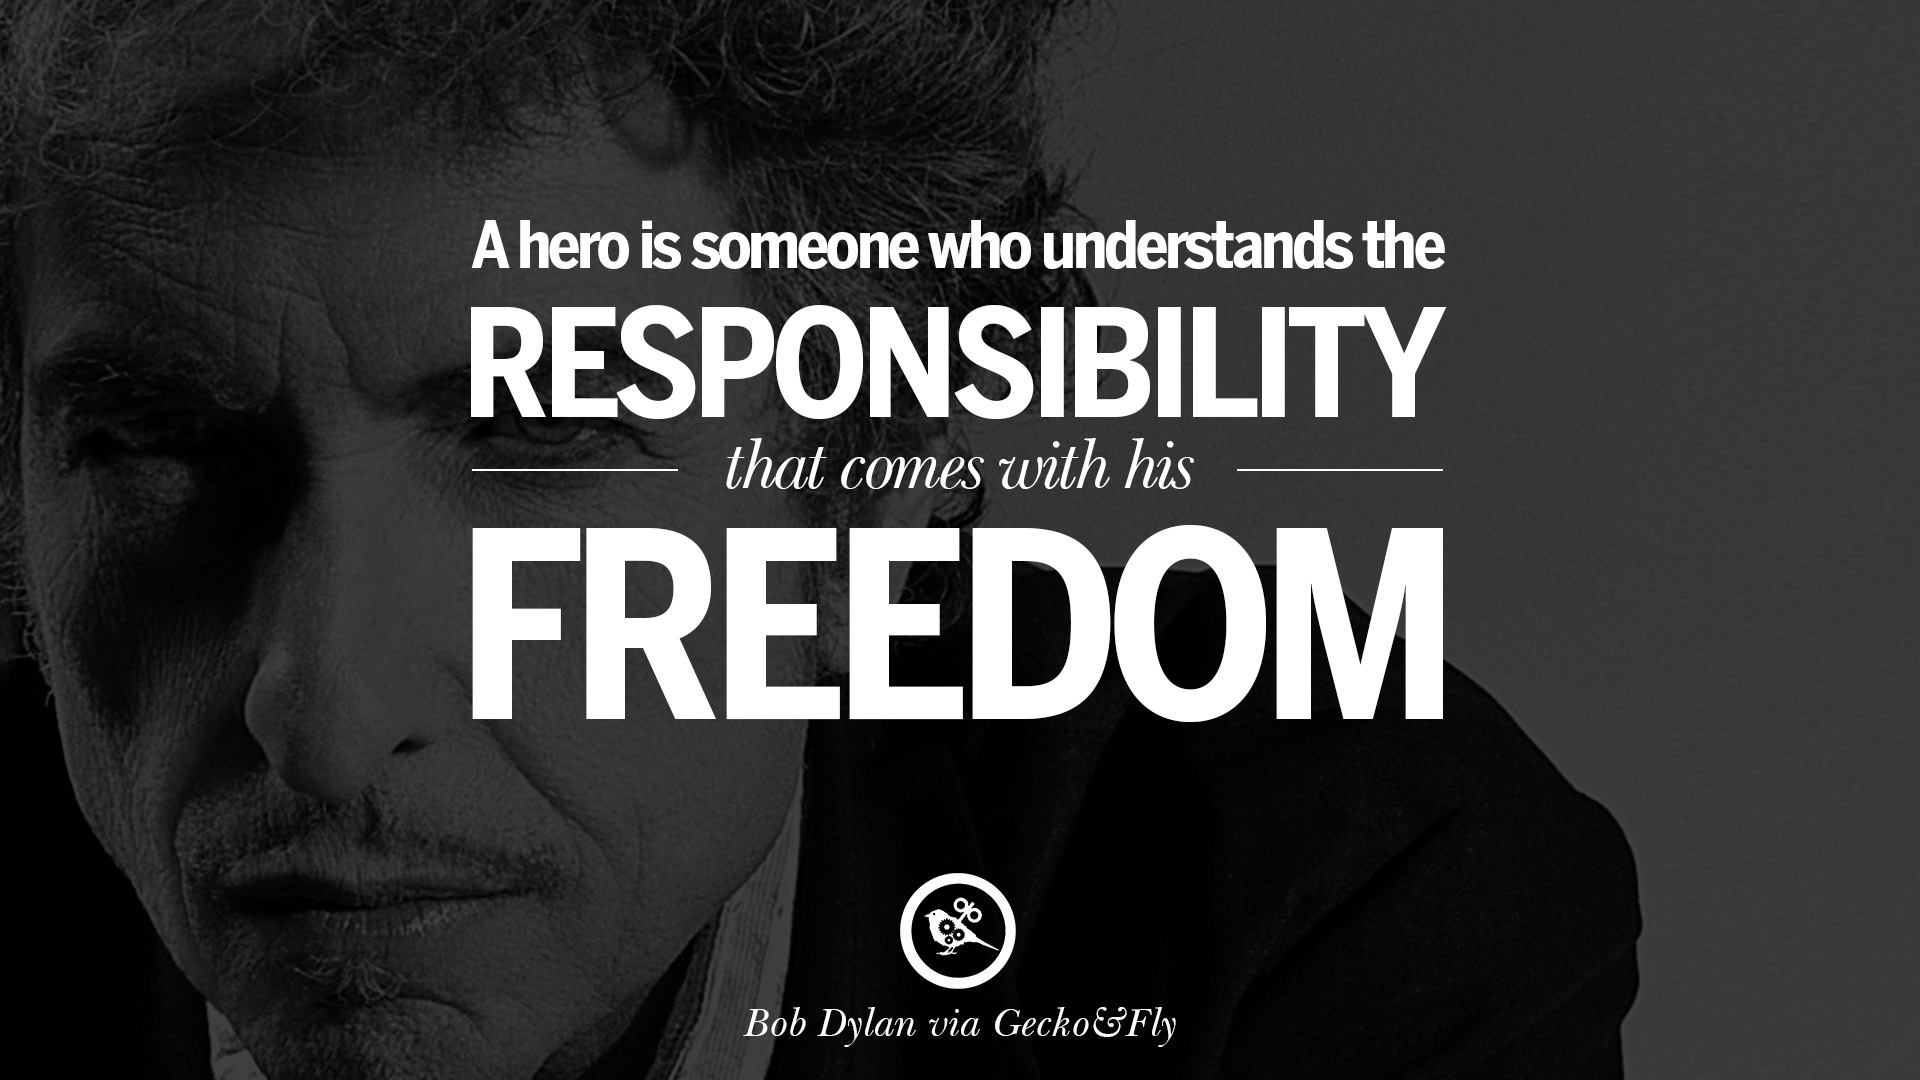 27 Inspirational Bob Dylan Quotes on Freedom, Love via His ...